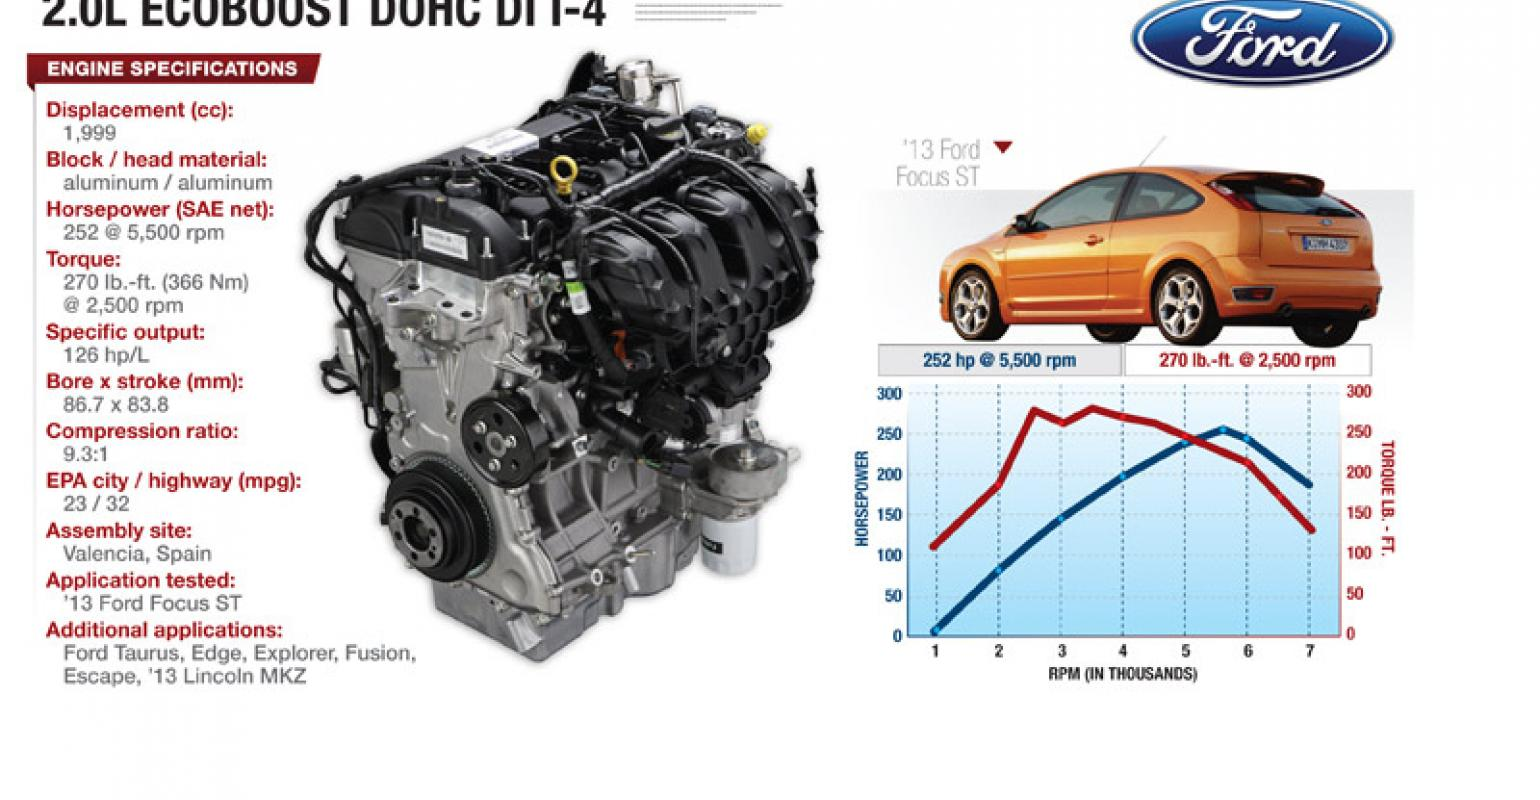 Ecoboost Ful Versatile And Efficient